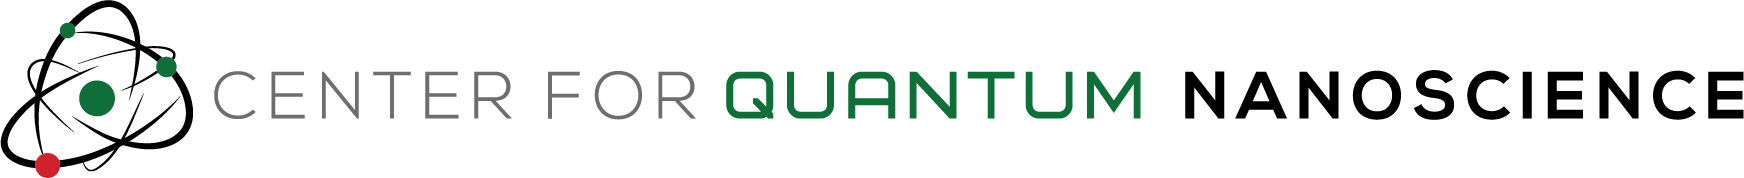 Center For Quantum Nano Science at Ewha Womans University